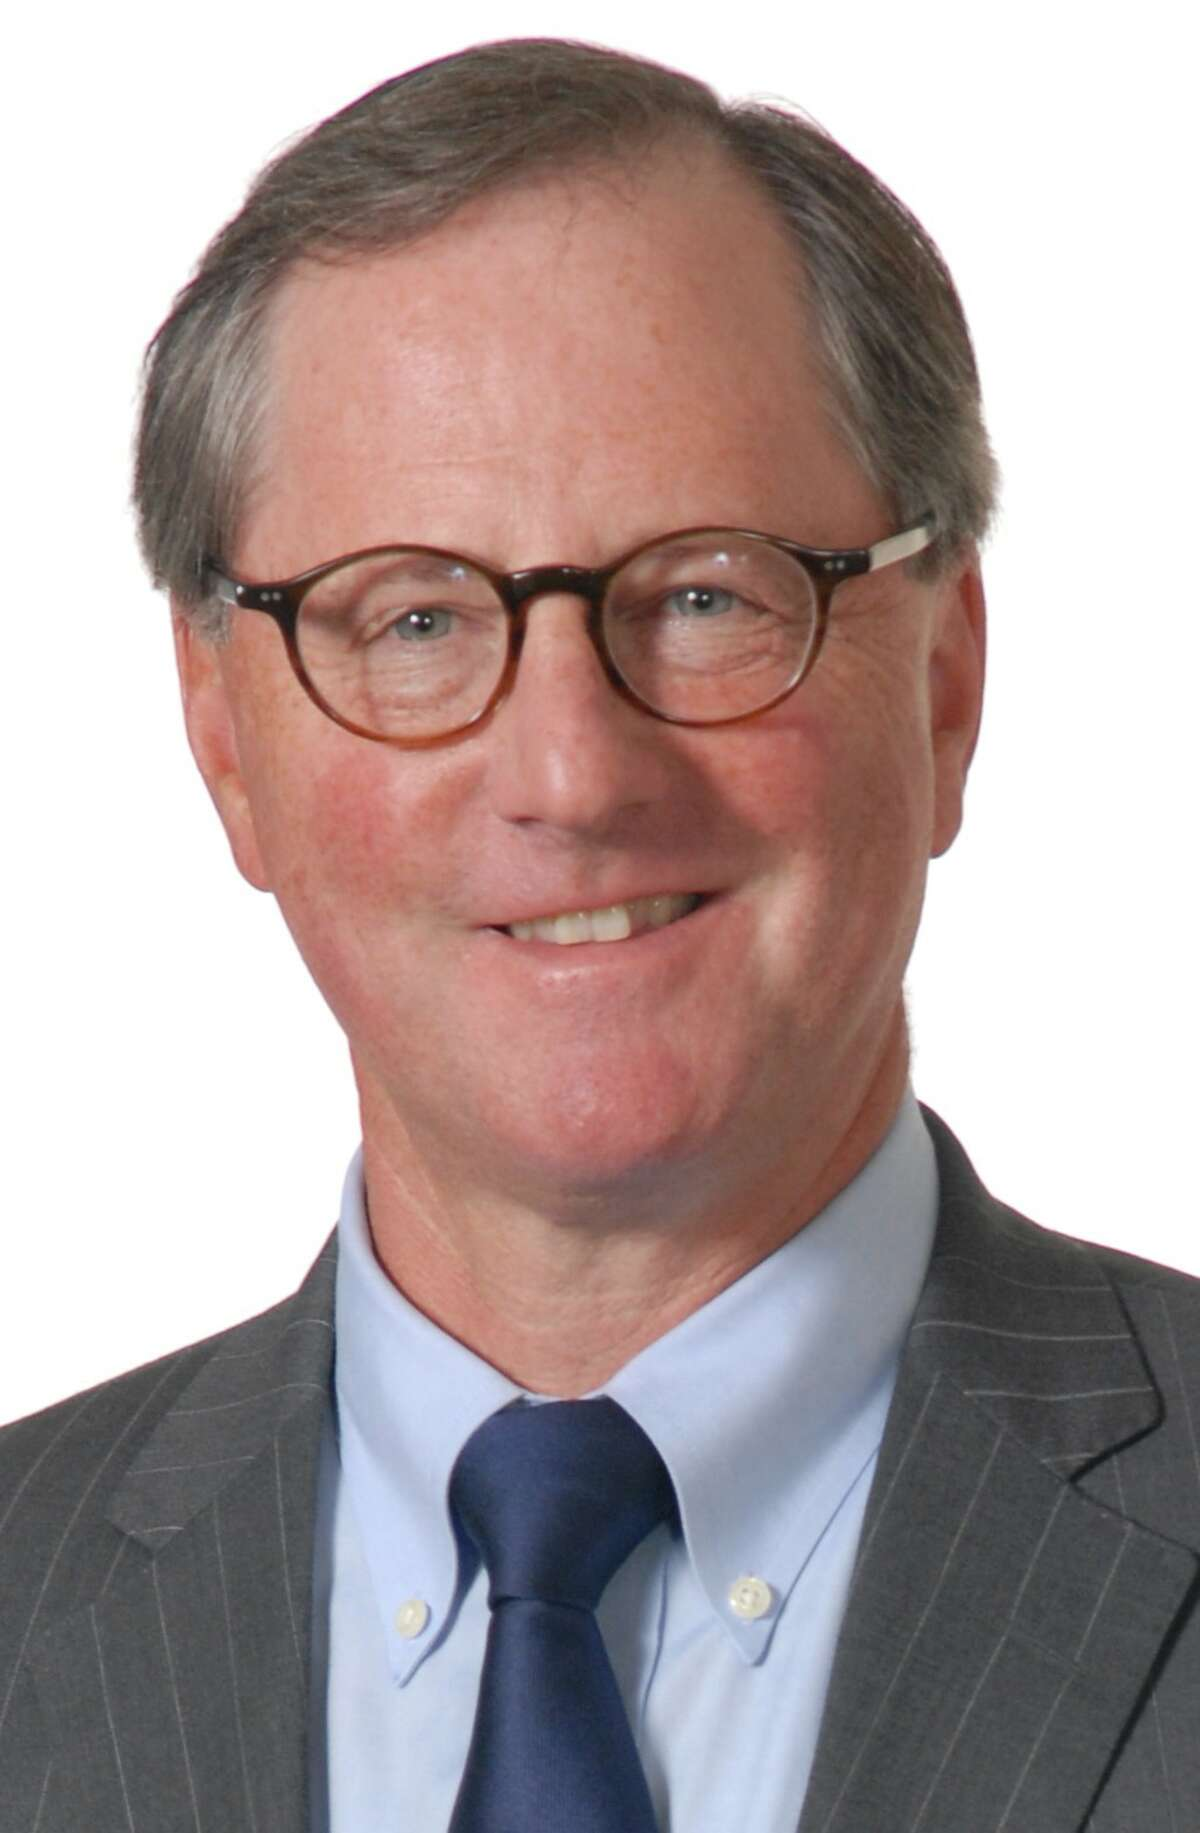 Peter Kellett is chairman and CEO of Dykema. Cox Smith is merging with the national law firm effective May 1. The combined the firm will be known as Dykema Cox Smith in Texas.